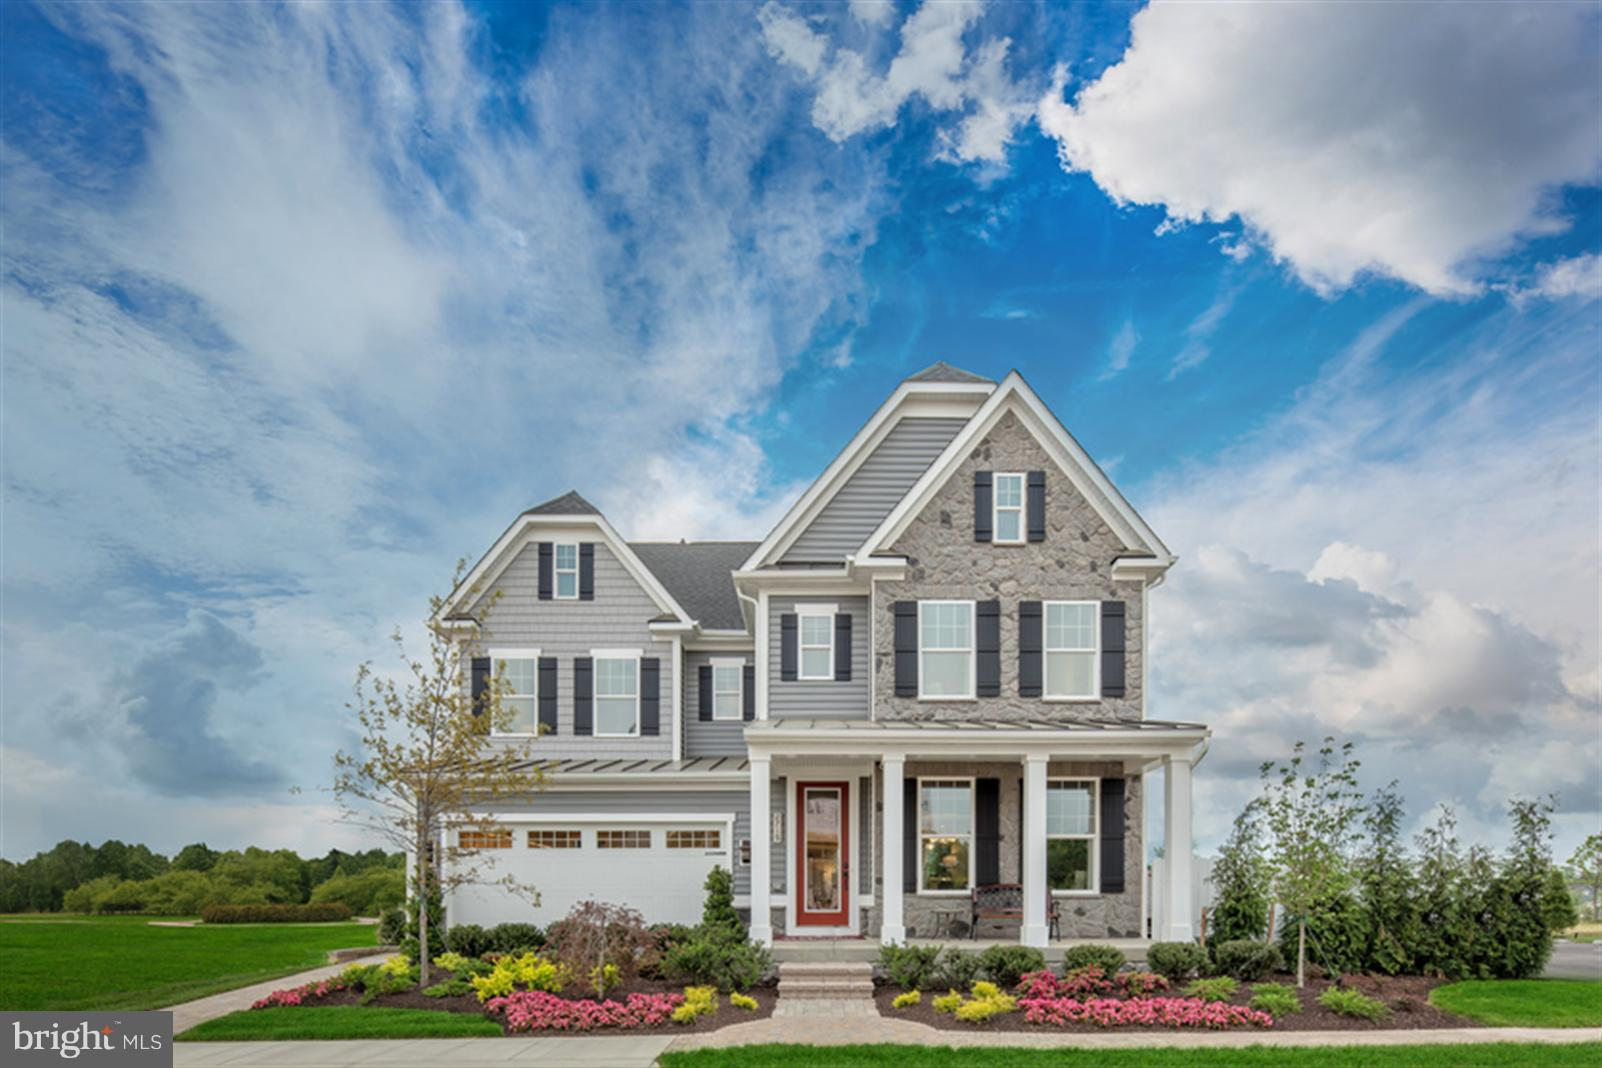 19051 ST ALBERT DRIVE, BROOKEVILLE, MD 20833